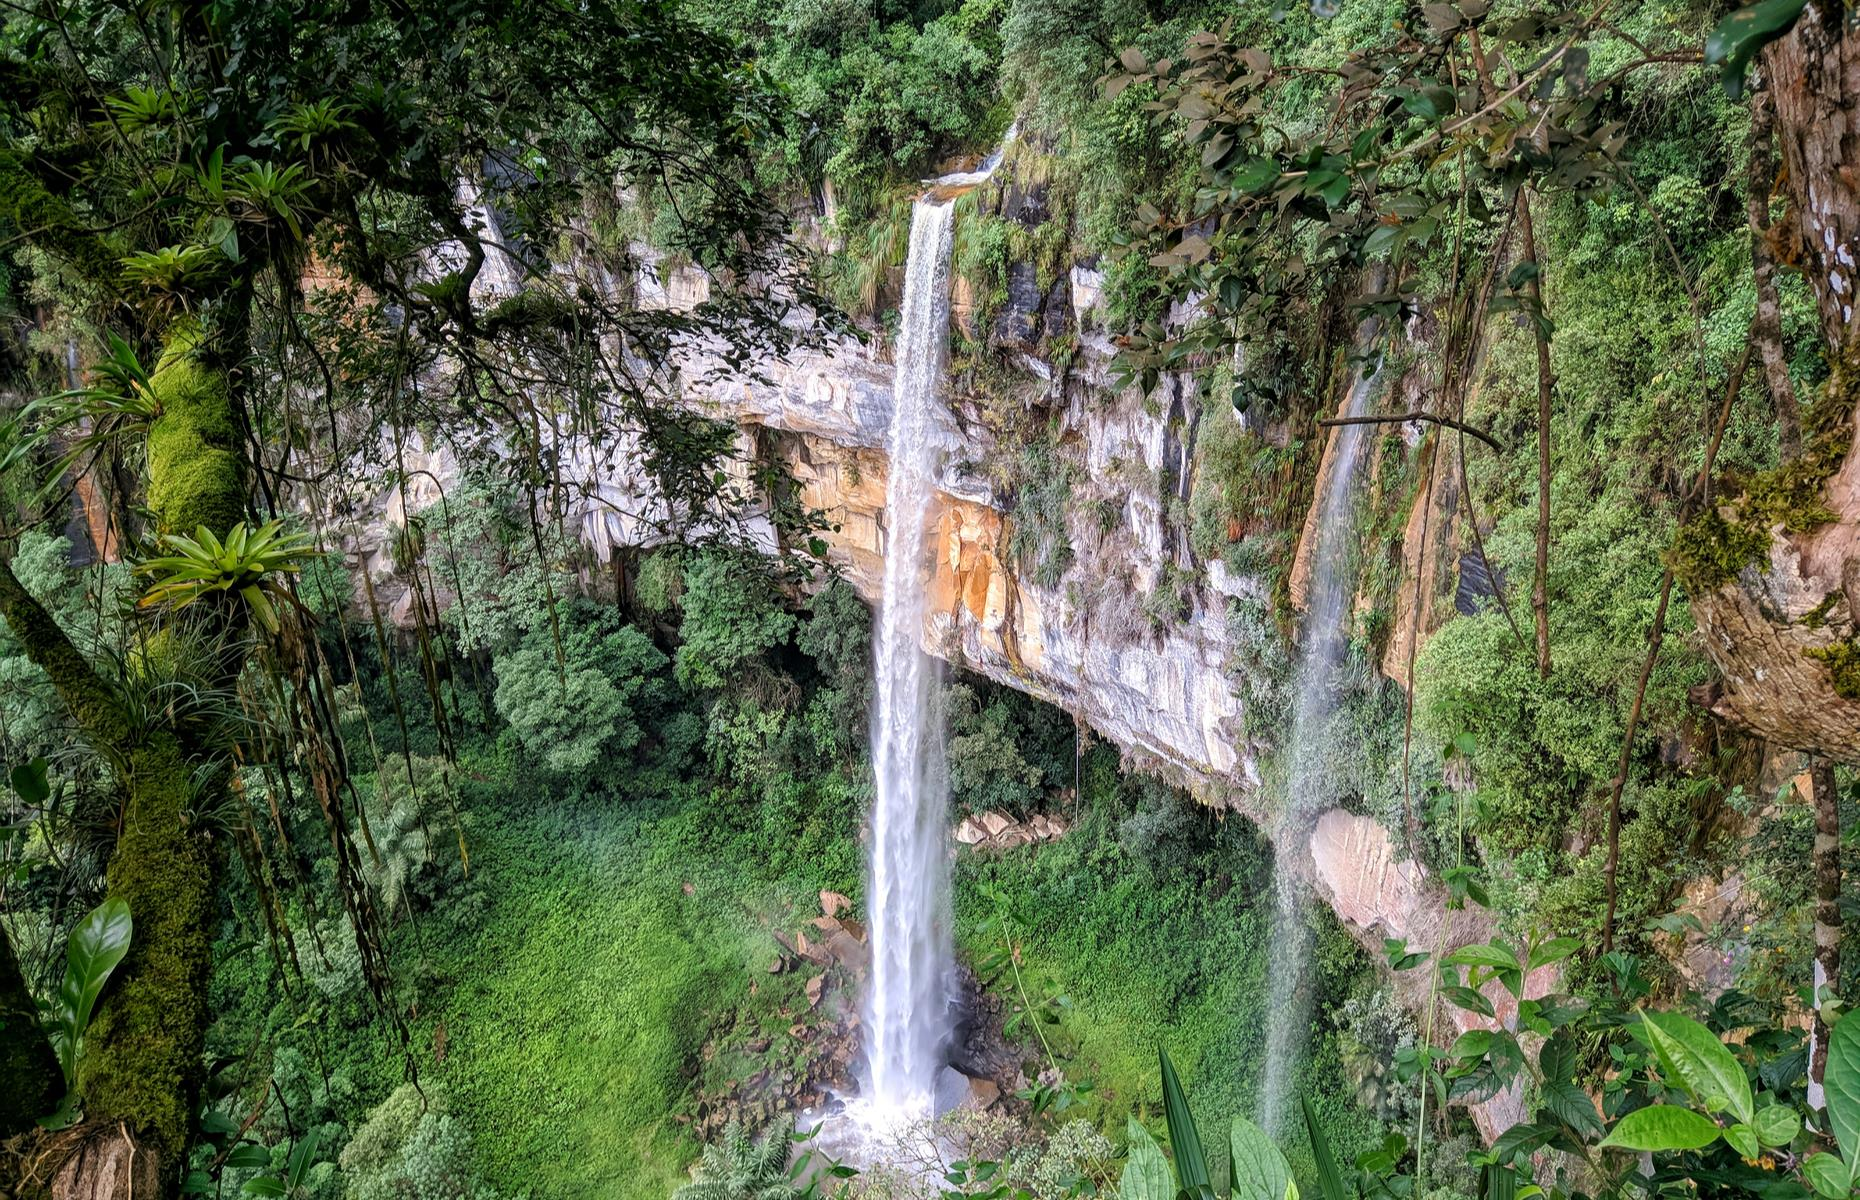 Slide 8 of 31: One of the world's largest waterfalls is tucked deep in the Bosque de Cataratas Gigantes de Cuispes – which, appropriately, translates as Forest of Gigantic Waterfalls of Cuispes – near the town of Chachapoyas. At nearly 3,000 feet (914m) high, it's an extraordinary sight with its silvery cascade surrounded by verdant, tangled jungle.